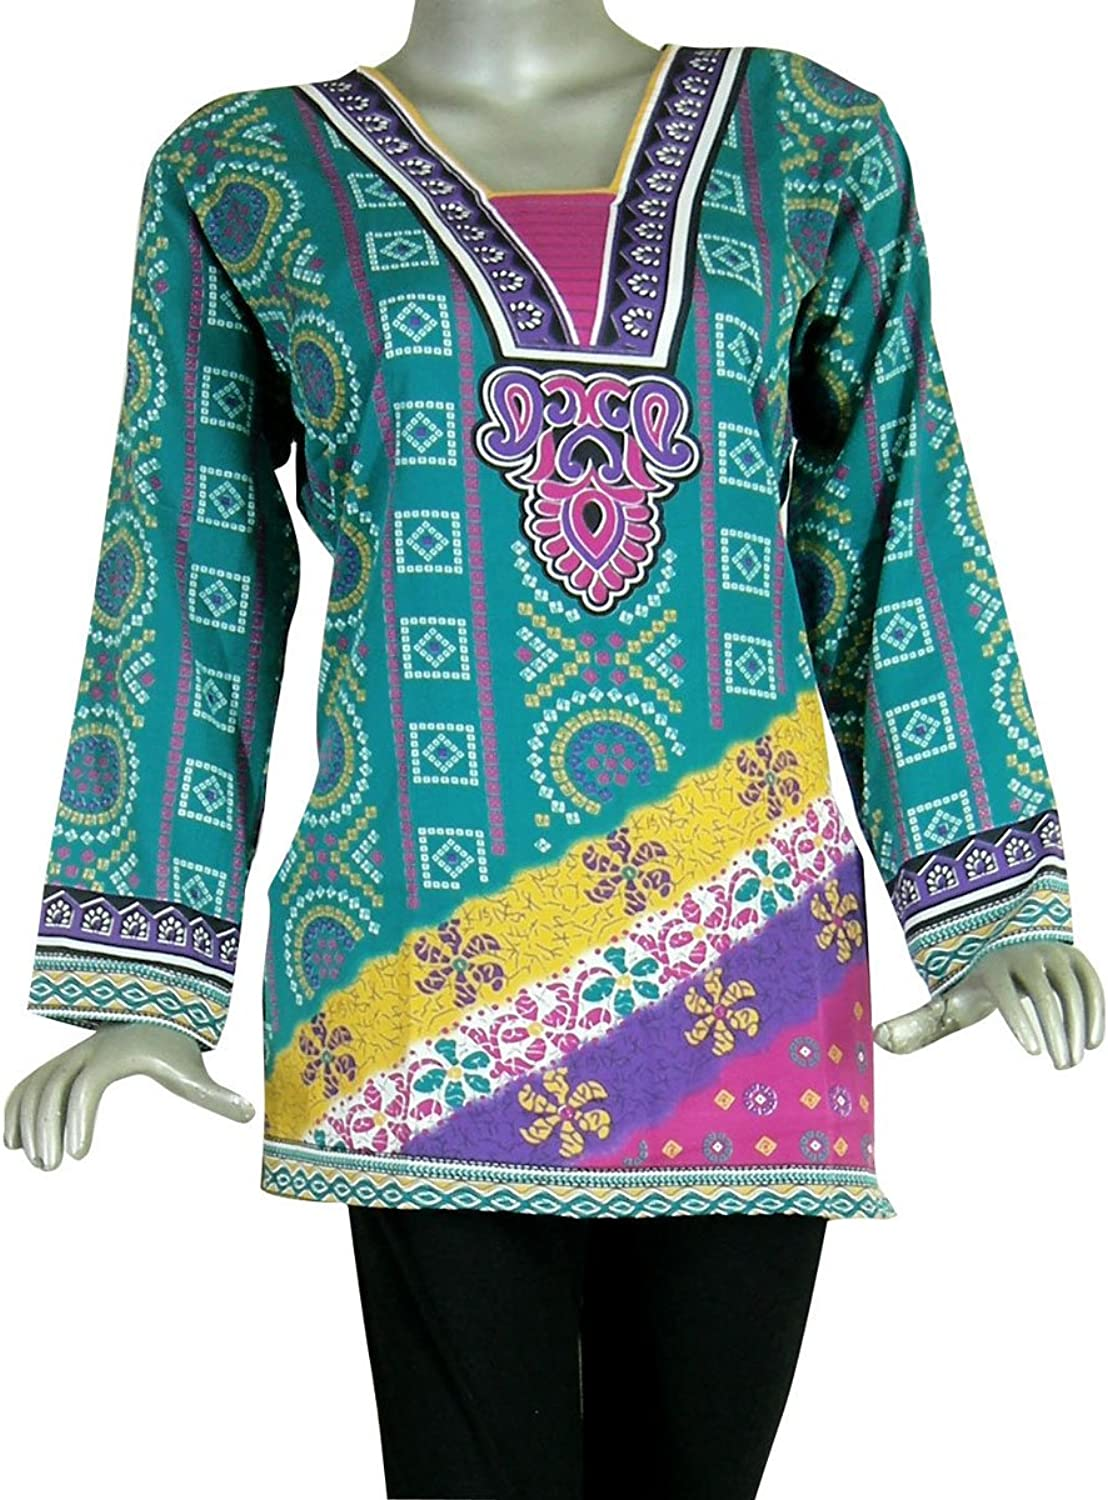 Panini Impex India Clothing Printed Crape Kurti Shirt Top